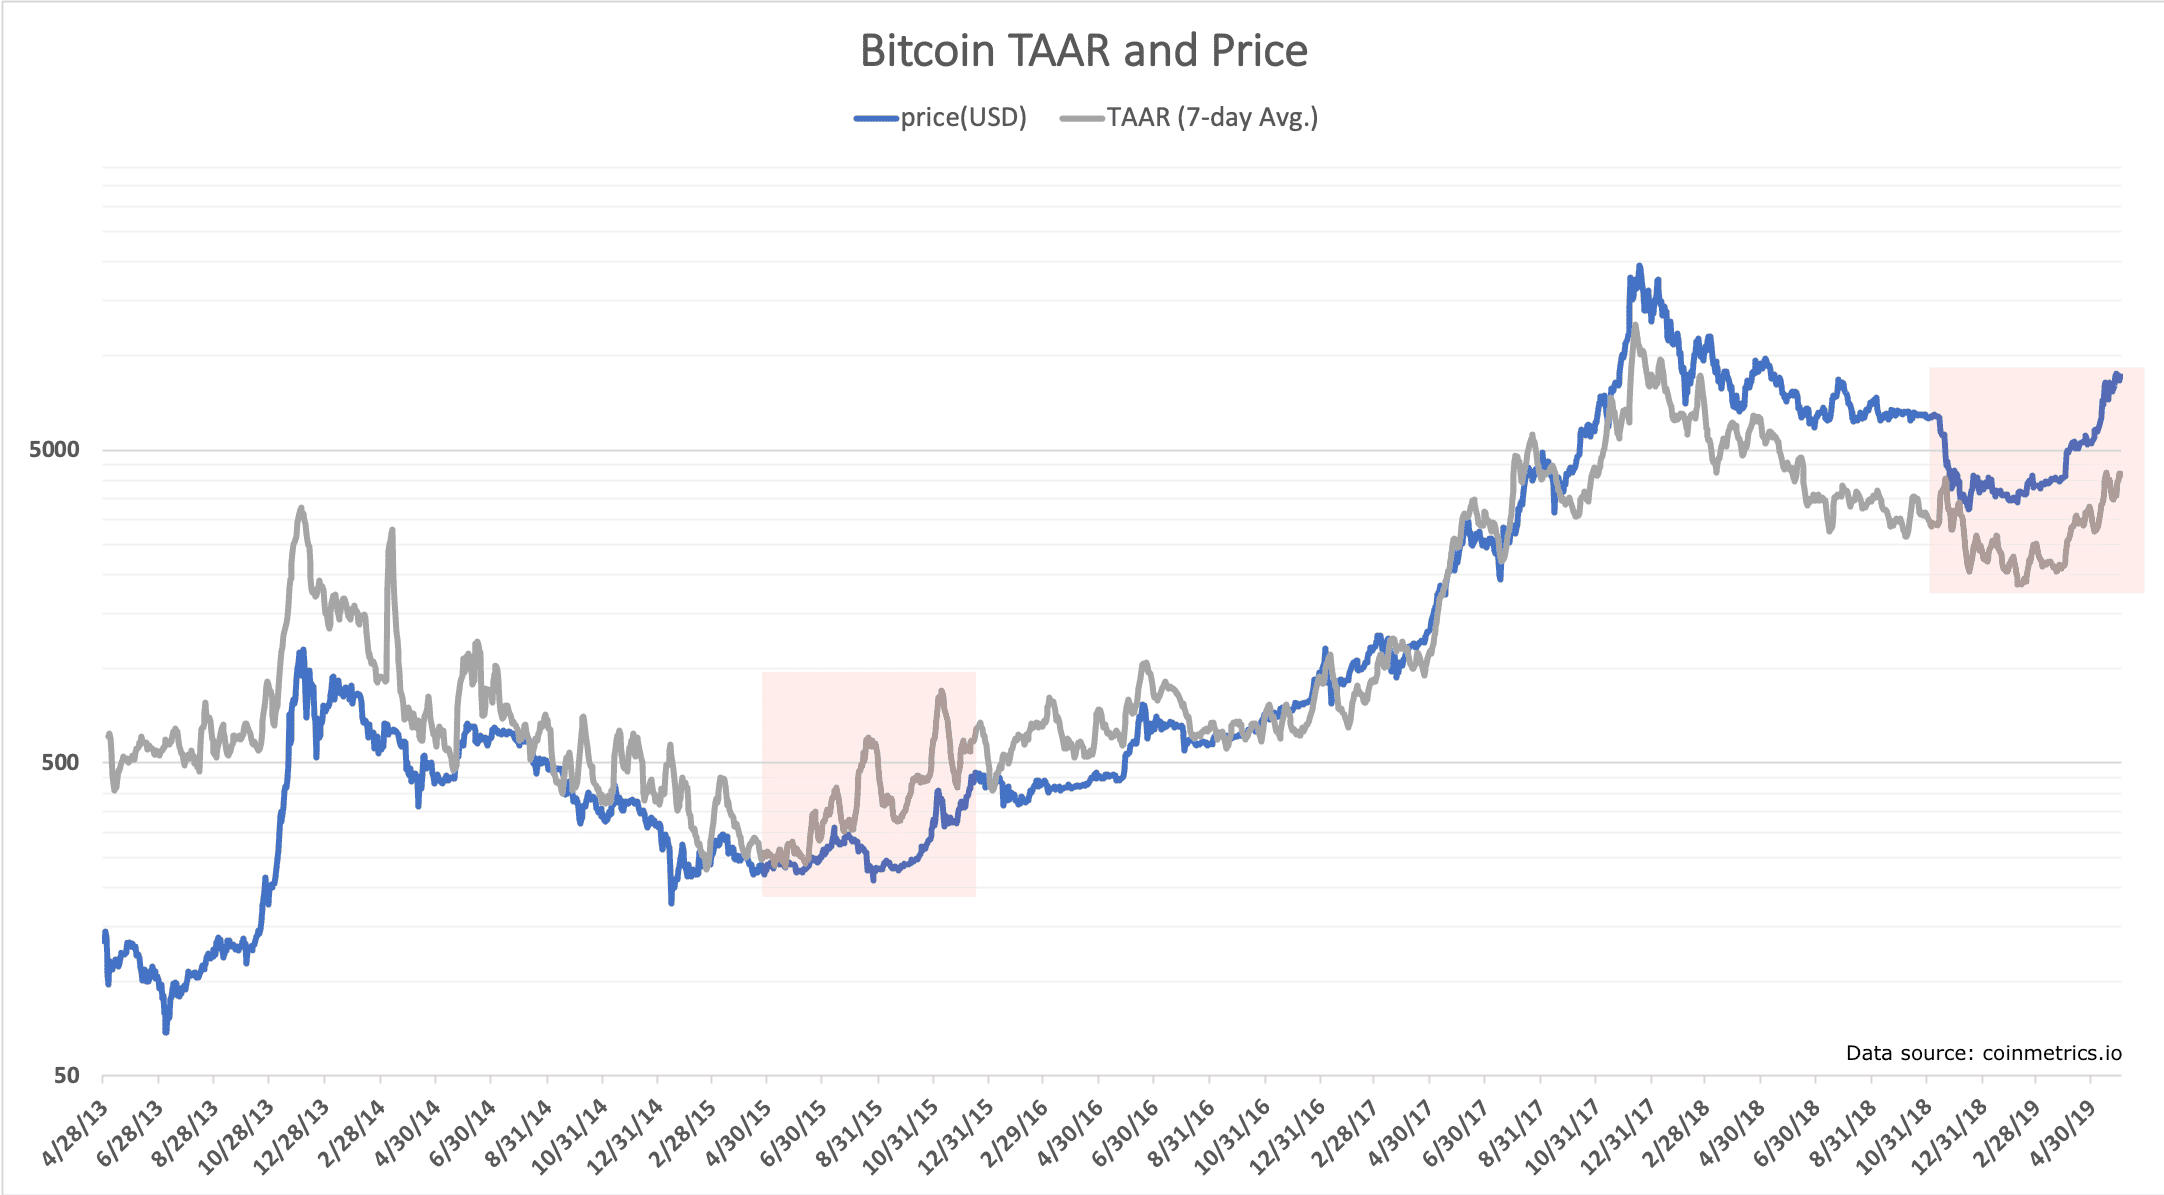 Bitcoin's 2019 Price Run Driven By Real Transaction Growth, Analysis Shows